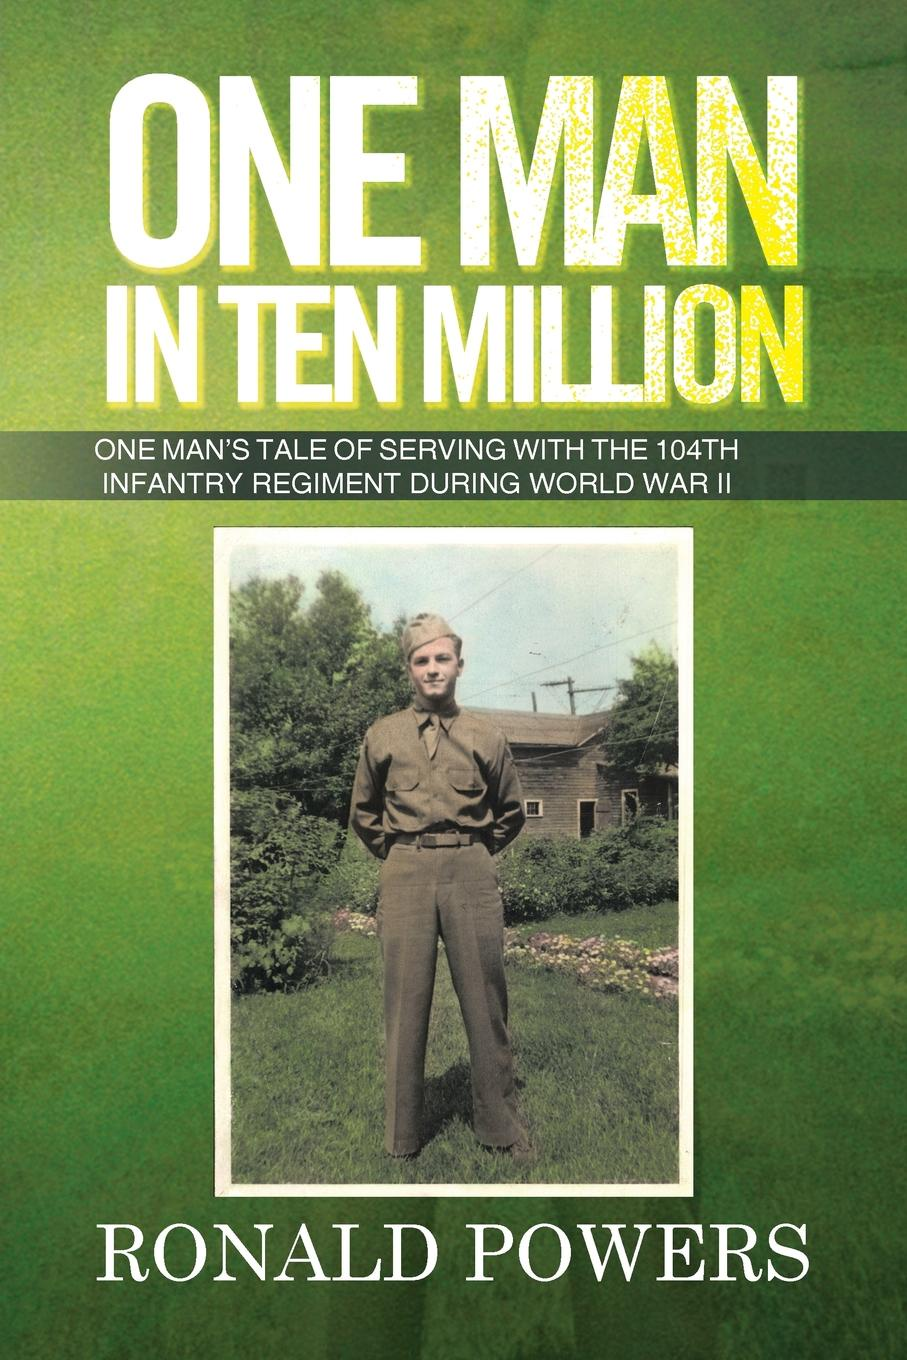 Ronald Powers One Man in Ten Million. One Man's Tale of Serving with the 104th Infantry Regiment During World War II chinese ancient battles of the war the opium war one of the 2015 chinese ten book jane mijal khodorkovsky award winners